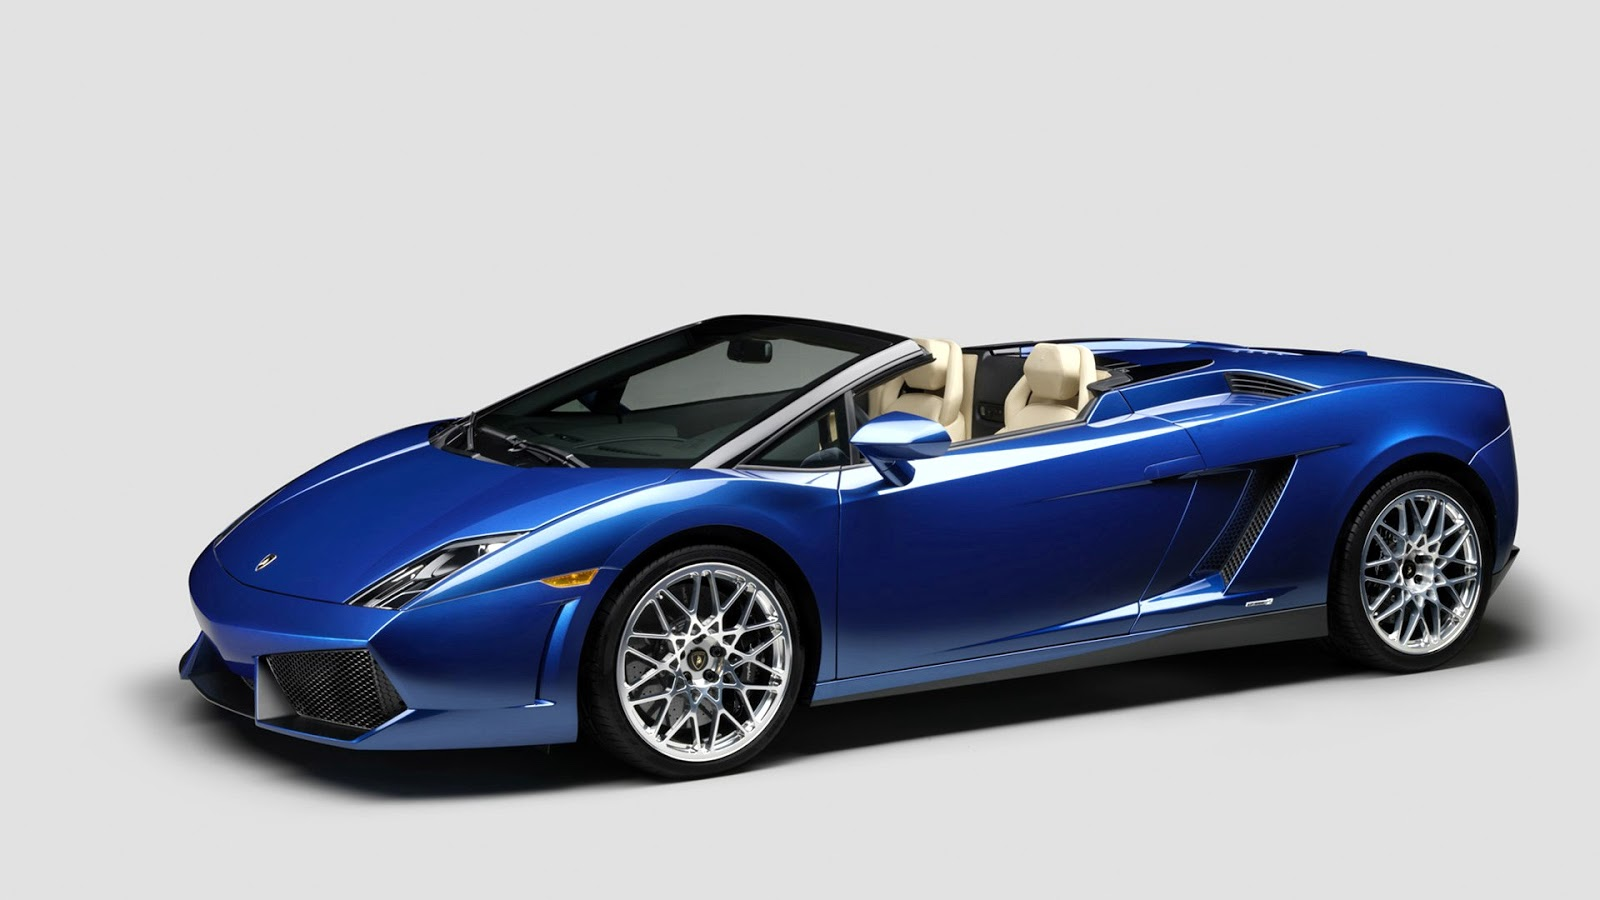 lamborghini gallardo lp 550 spyder hd 8 - Lamborghini Gallardo Wallpaper Blue